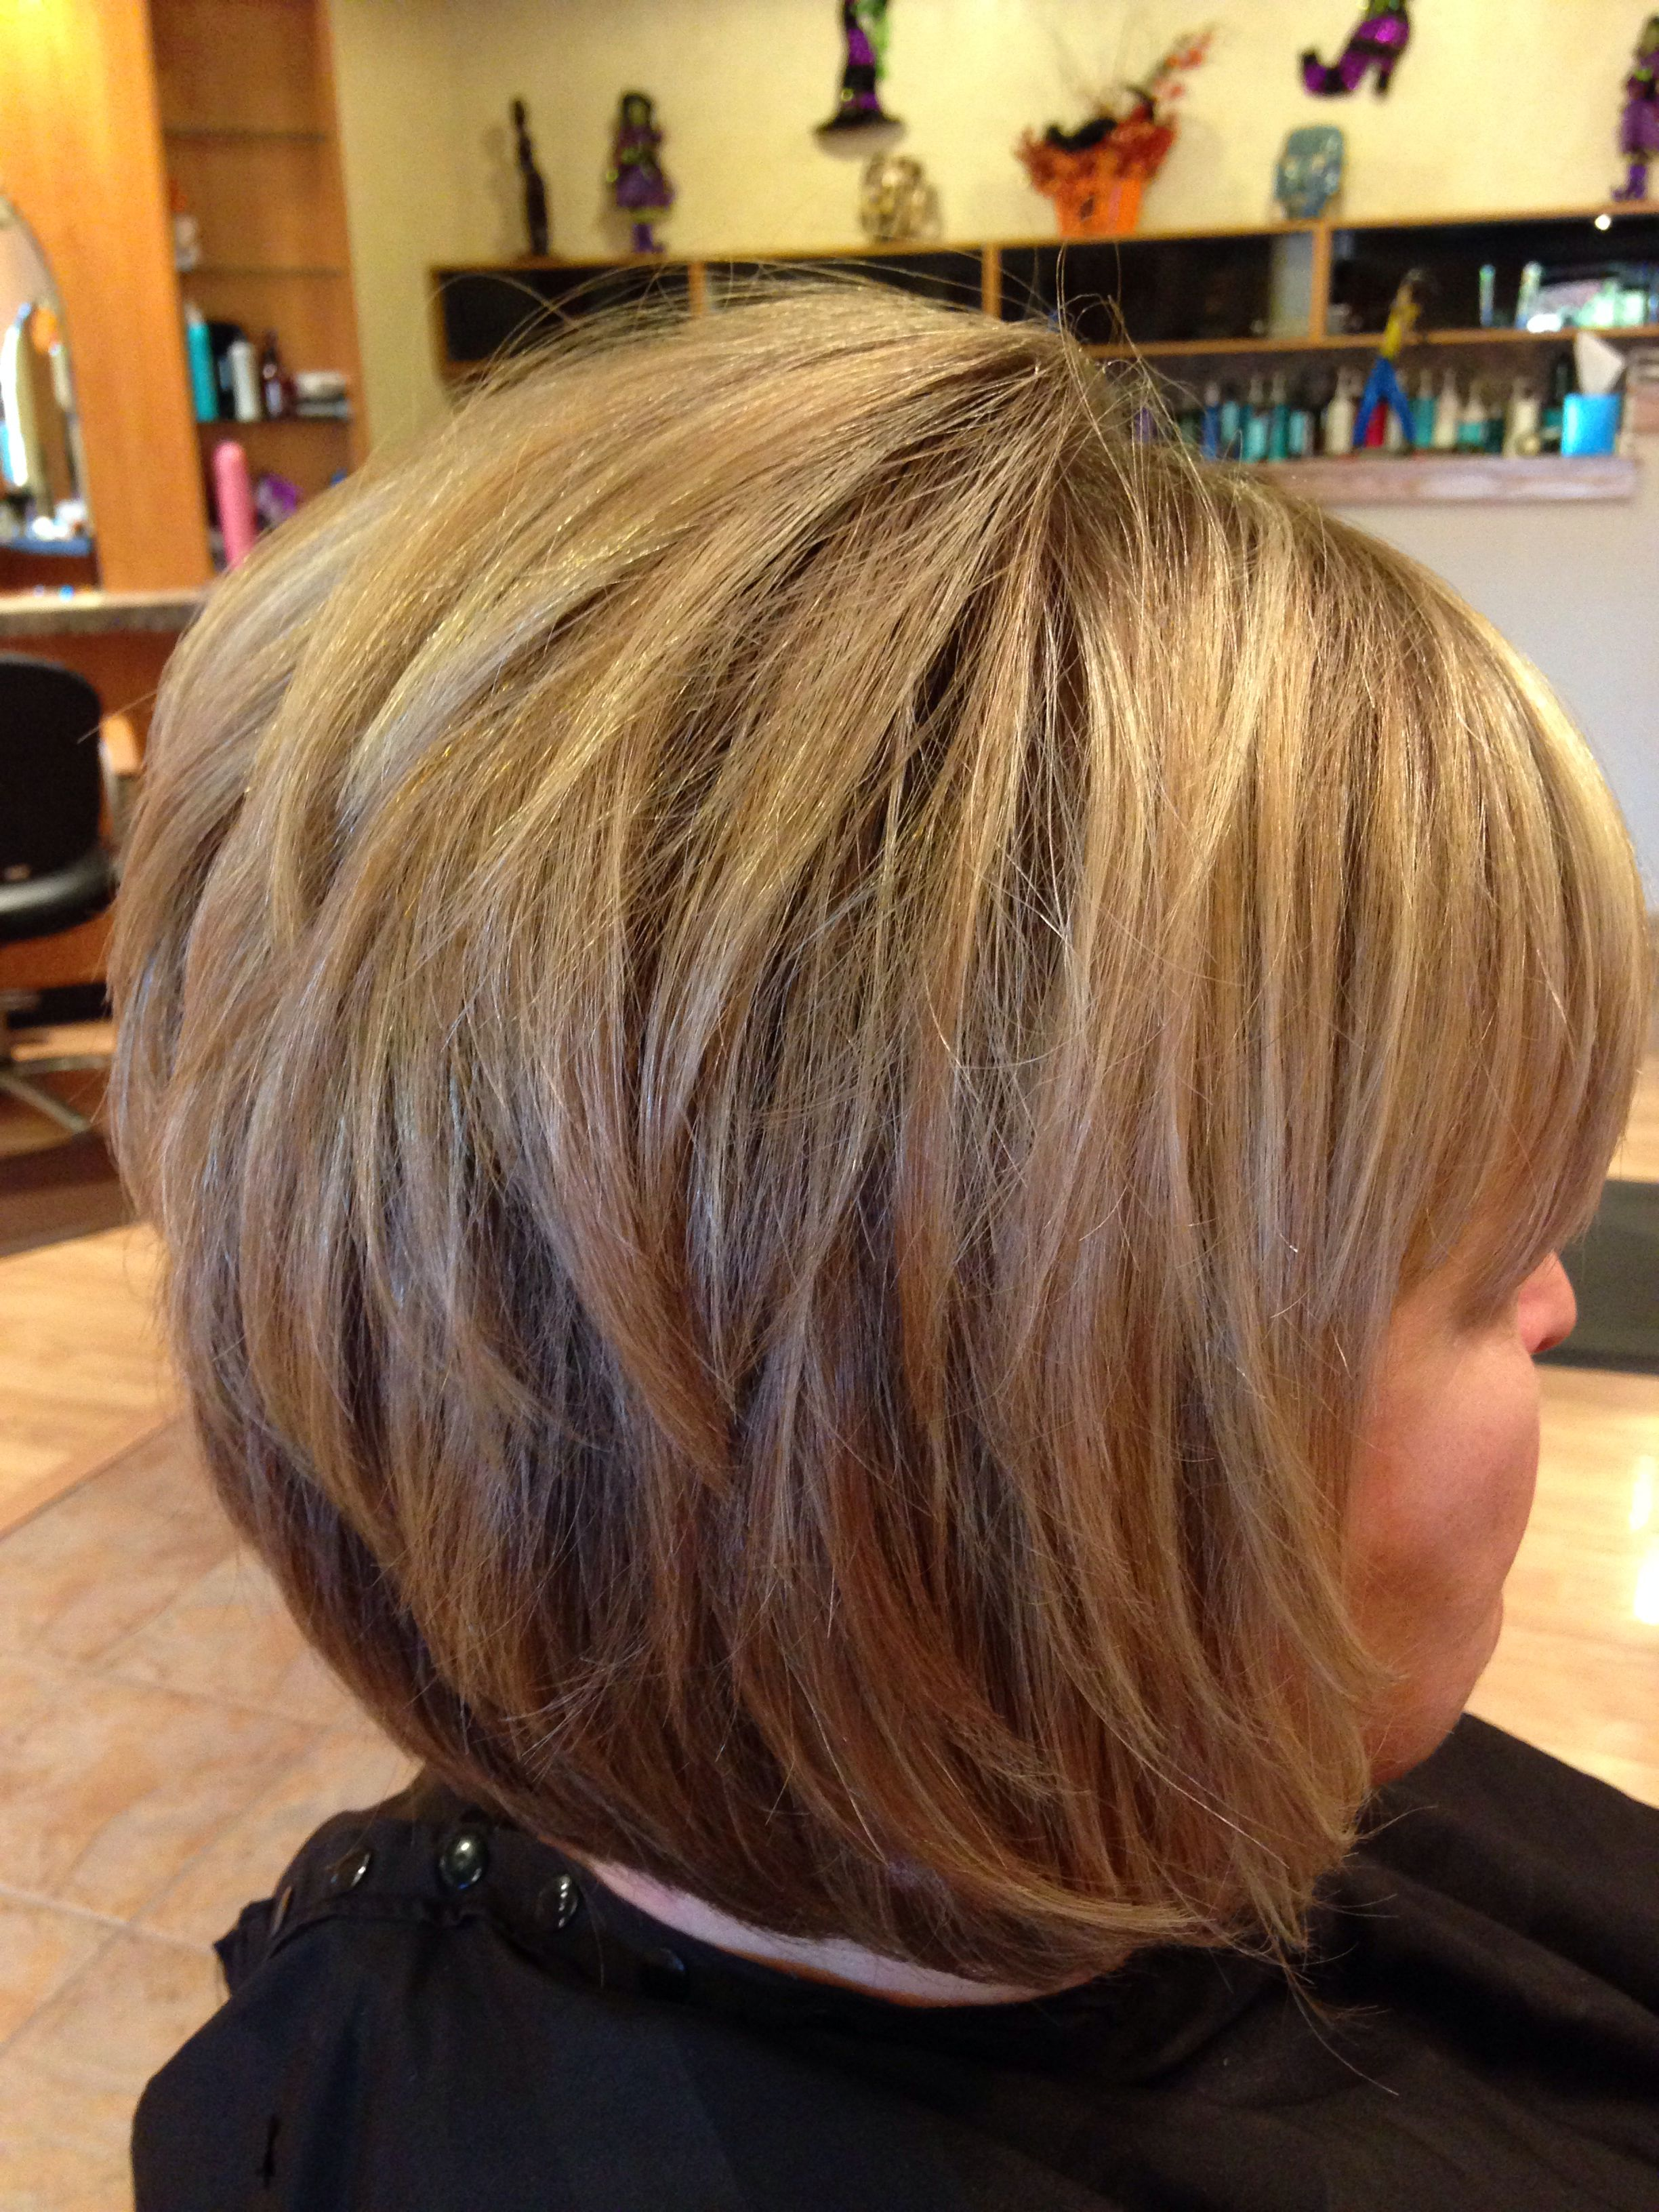 10 Winning Looks with Layered Bob Hairstyles: Women Short Hair Cuts forecast